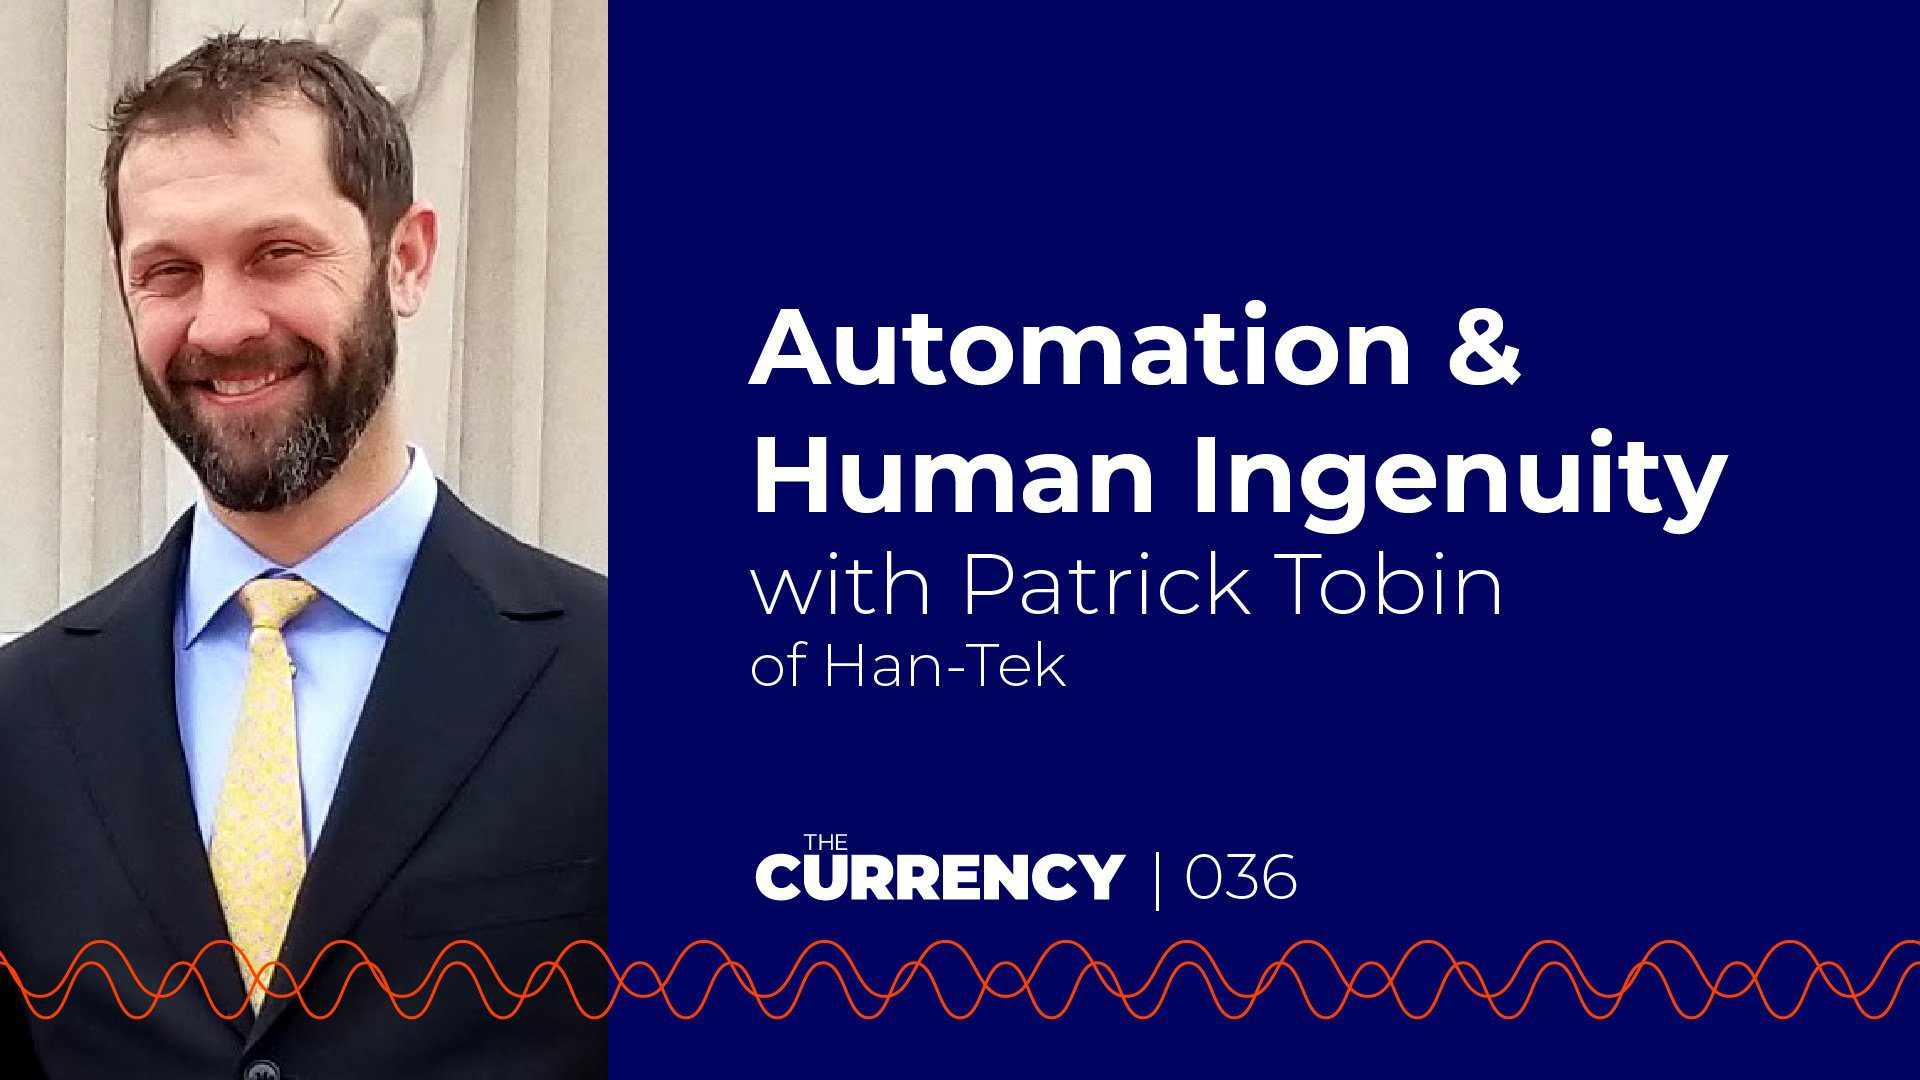 The Currency: [036] Automation & Human Ingenuity with Patrick Tobin of Han-Tek